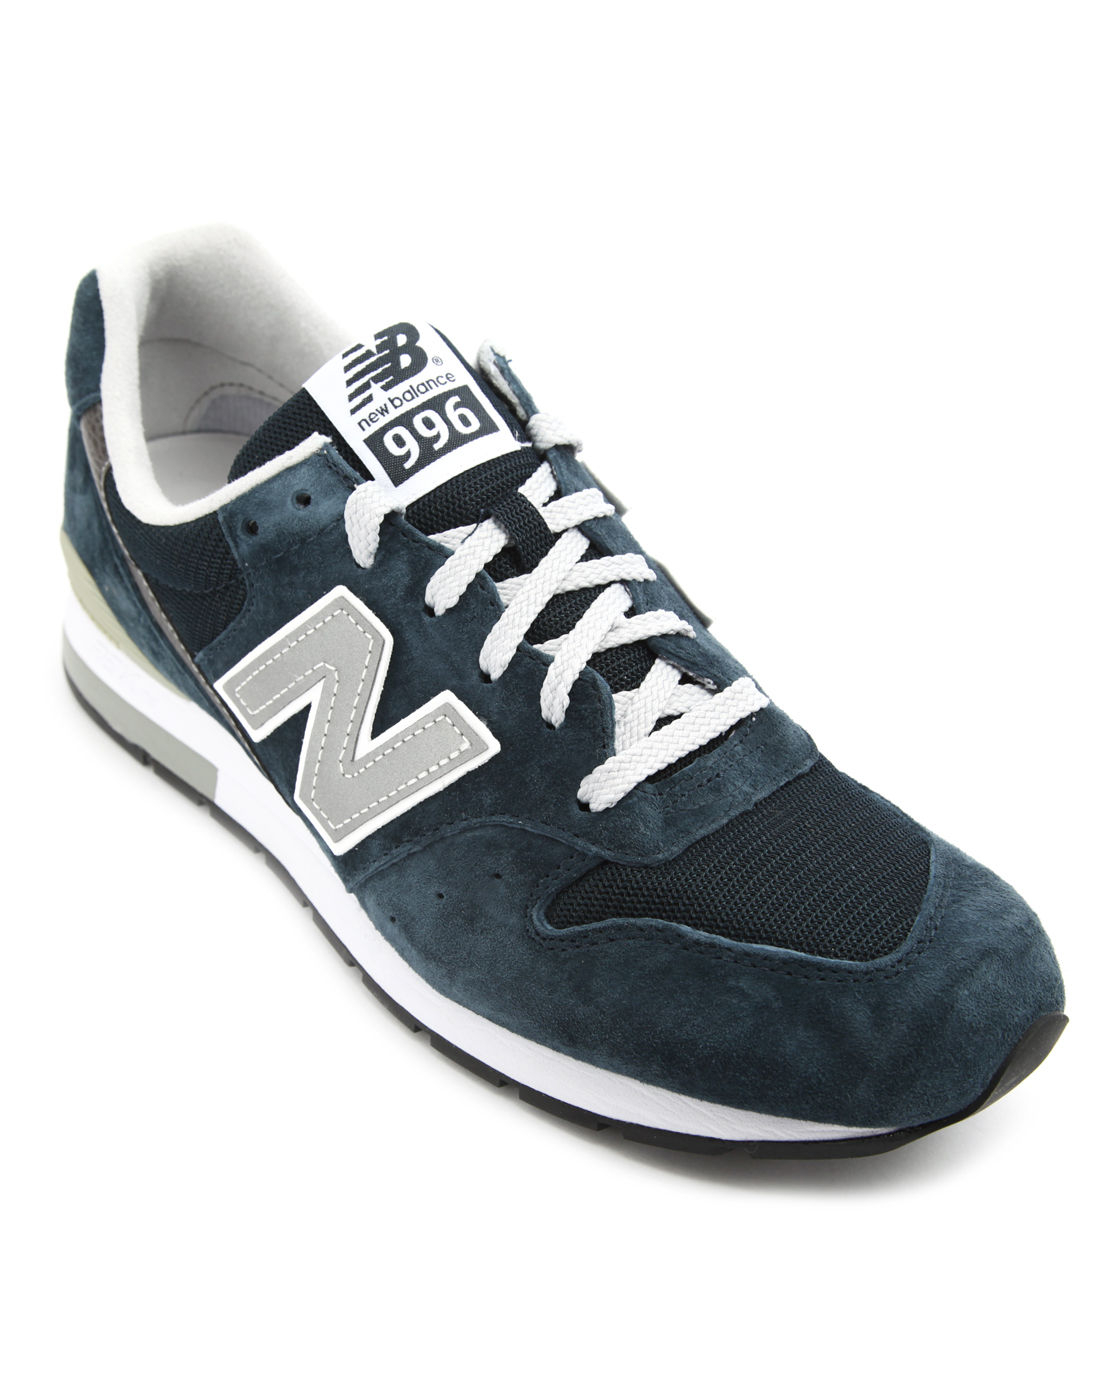 new balance mrl 996 navy suede sneakers in blue for men. Black Bedroom Furniture Sets. Home Design Ideas